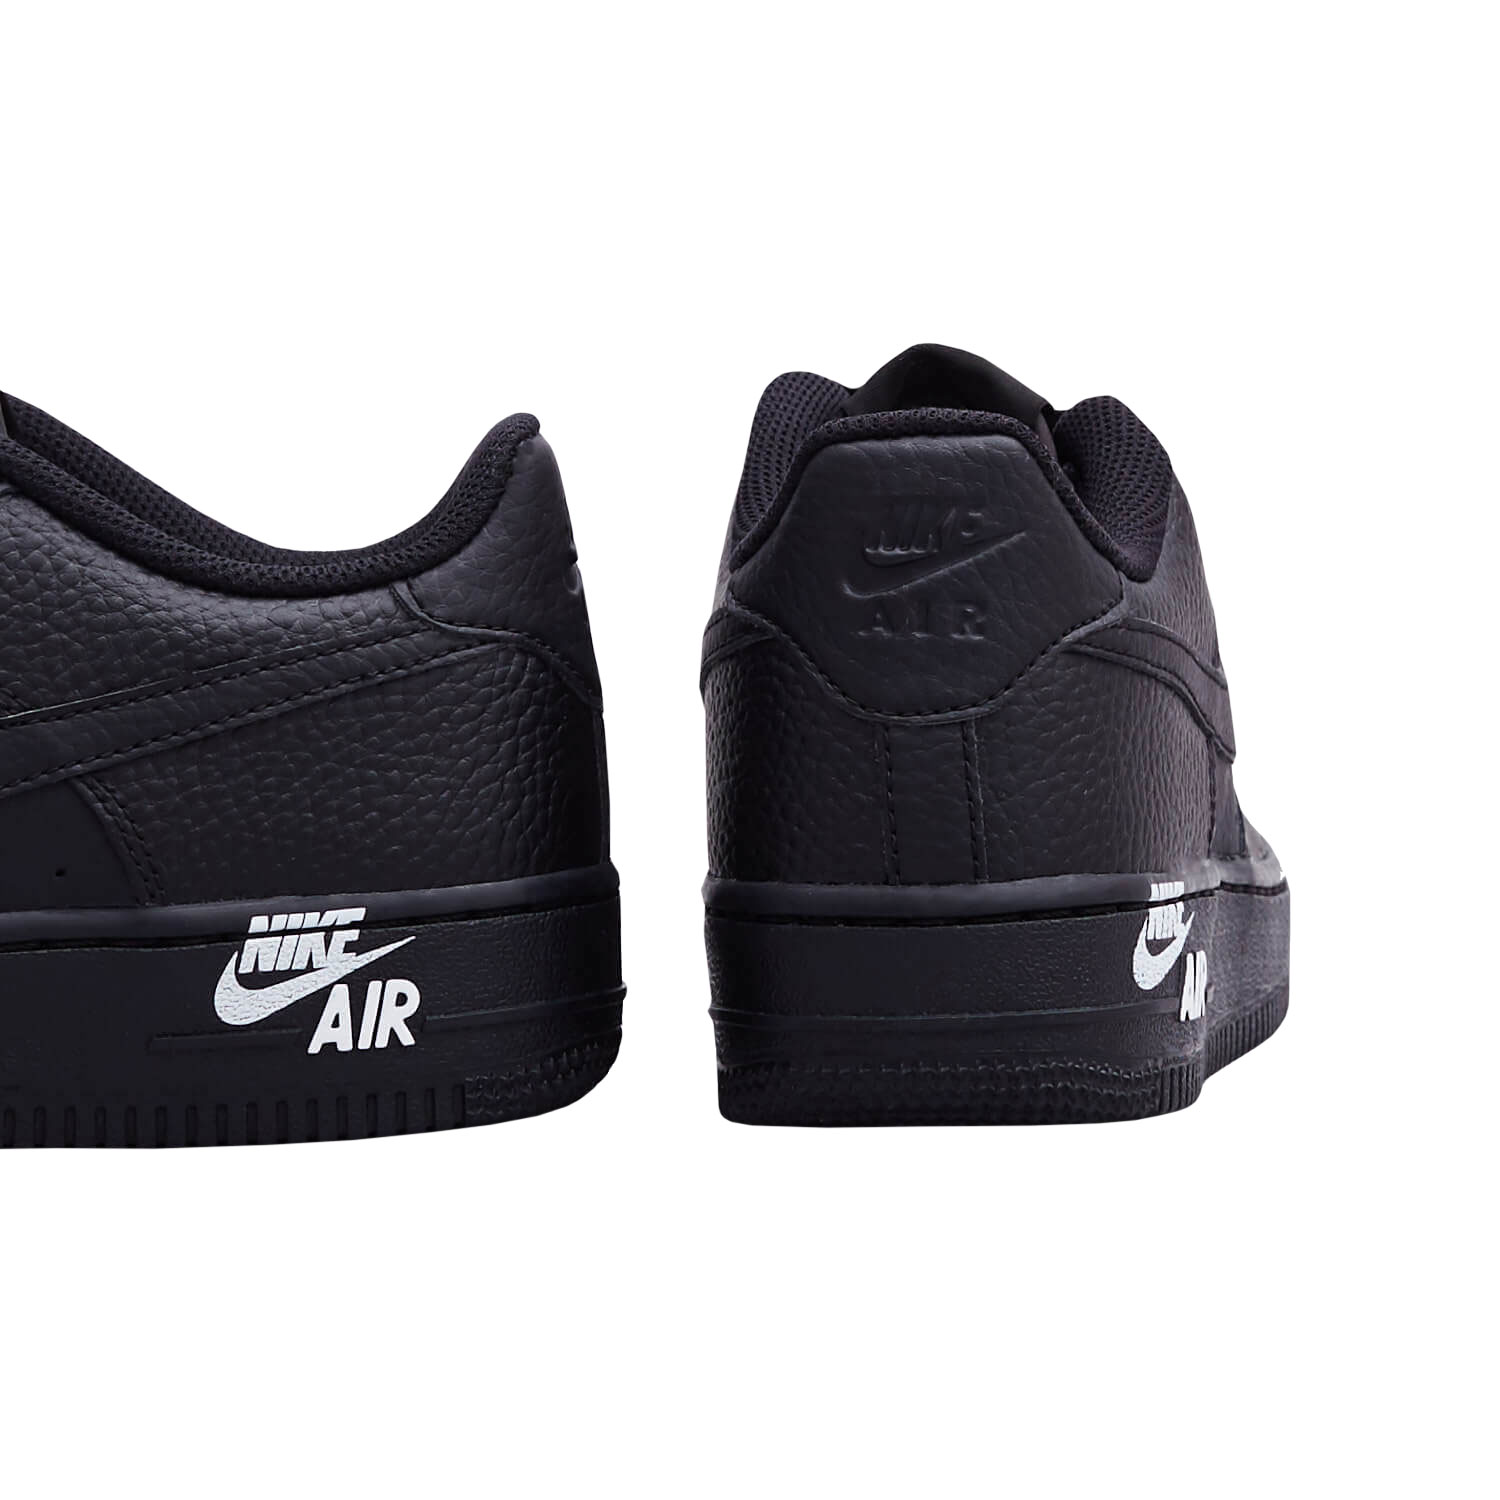 details for undefeated x on sale coupon code for nike air force 1 schwarz or weiß 8ac3d 01d64